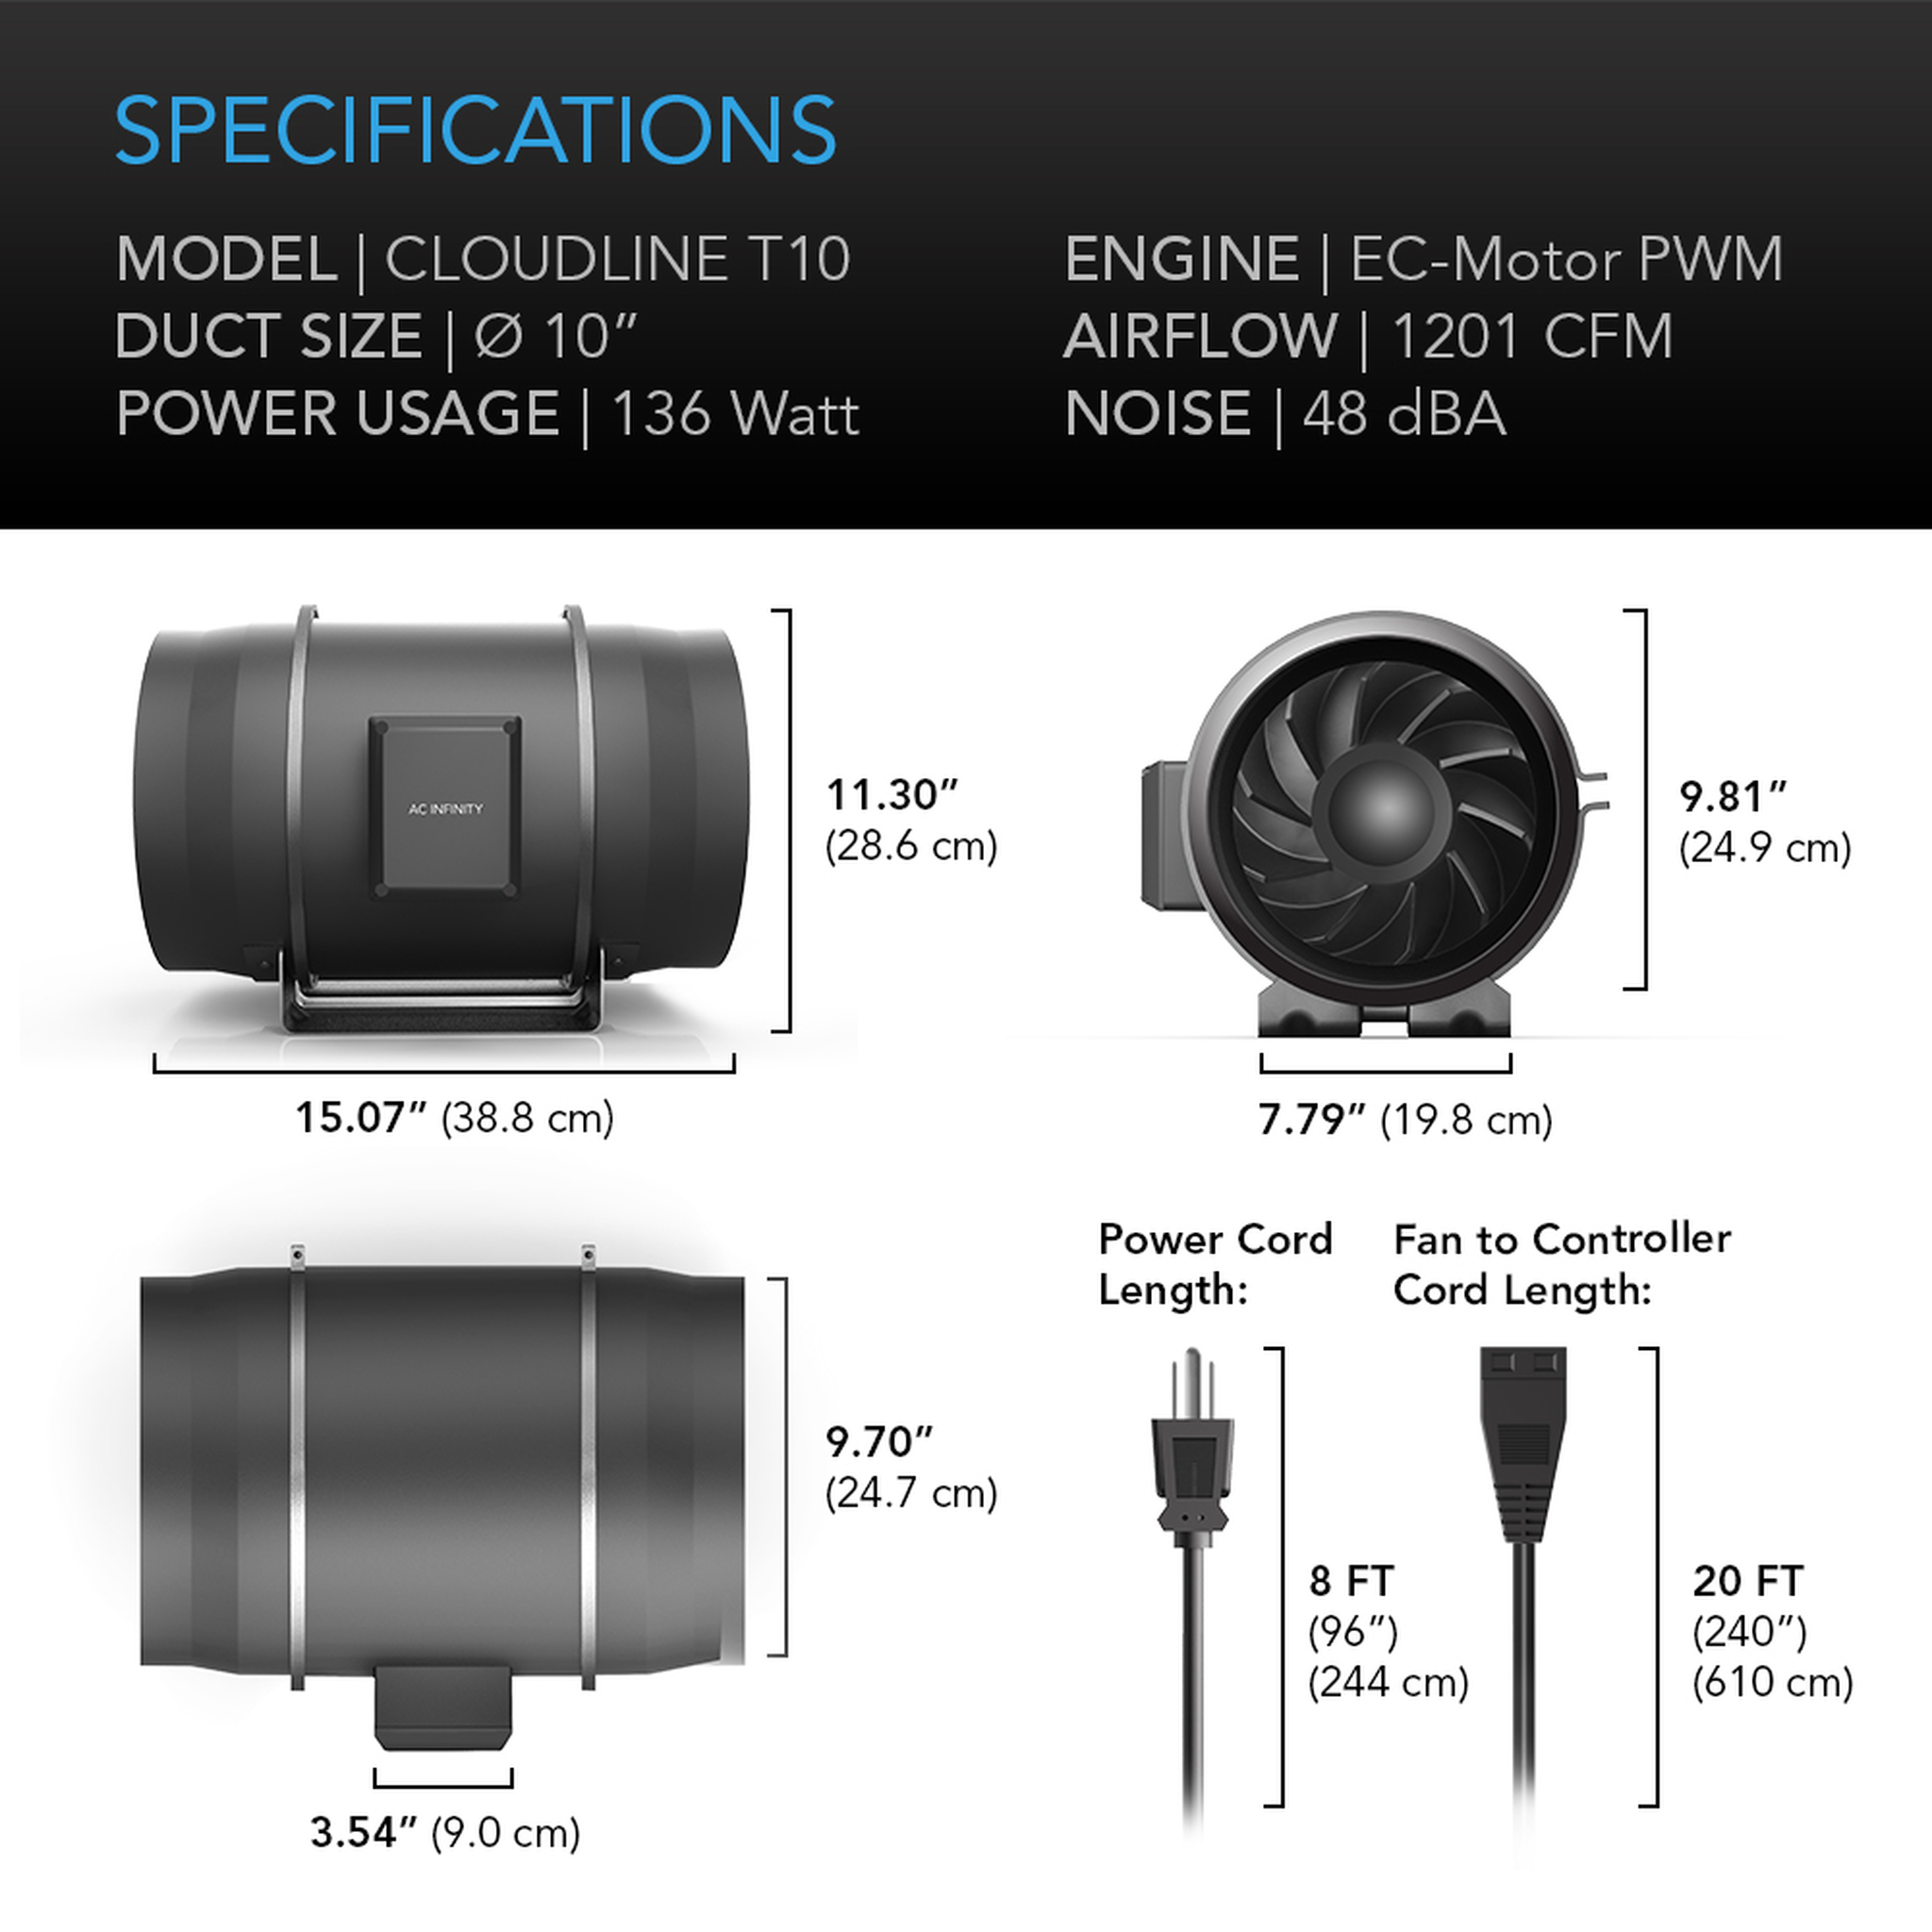 Cloudline T10 Series Specificatioins